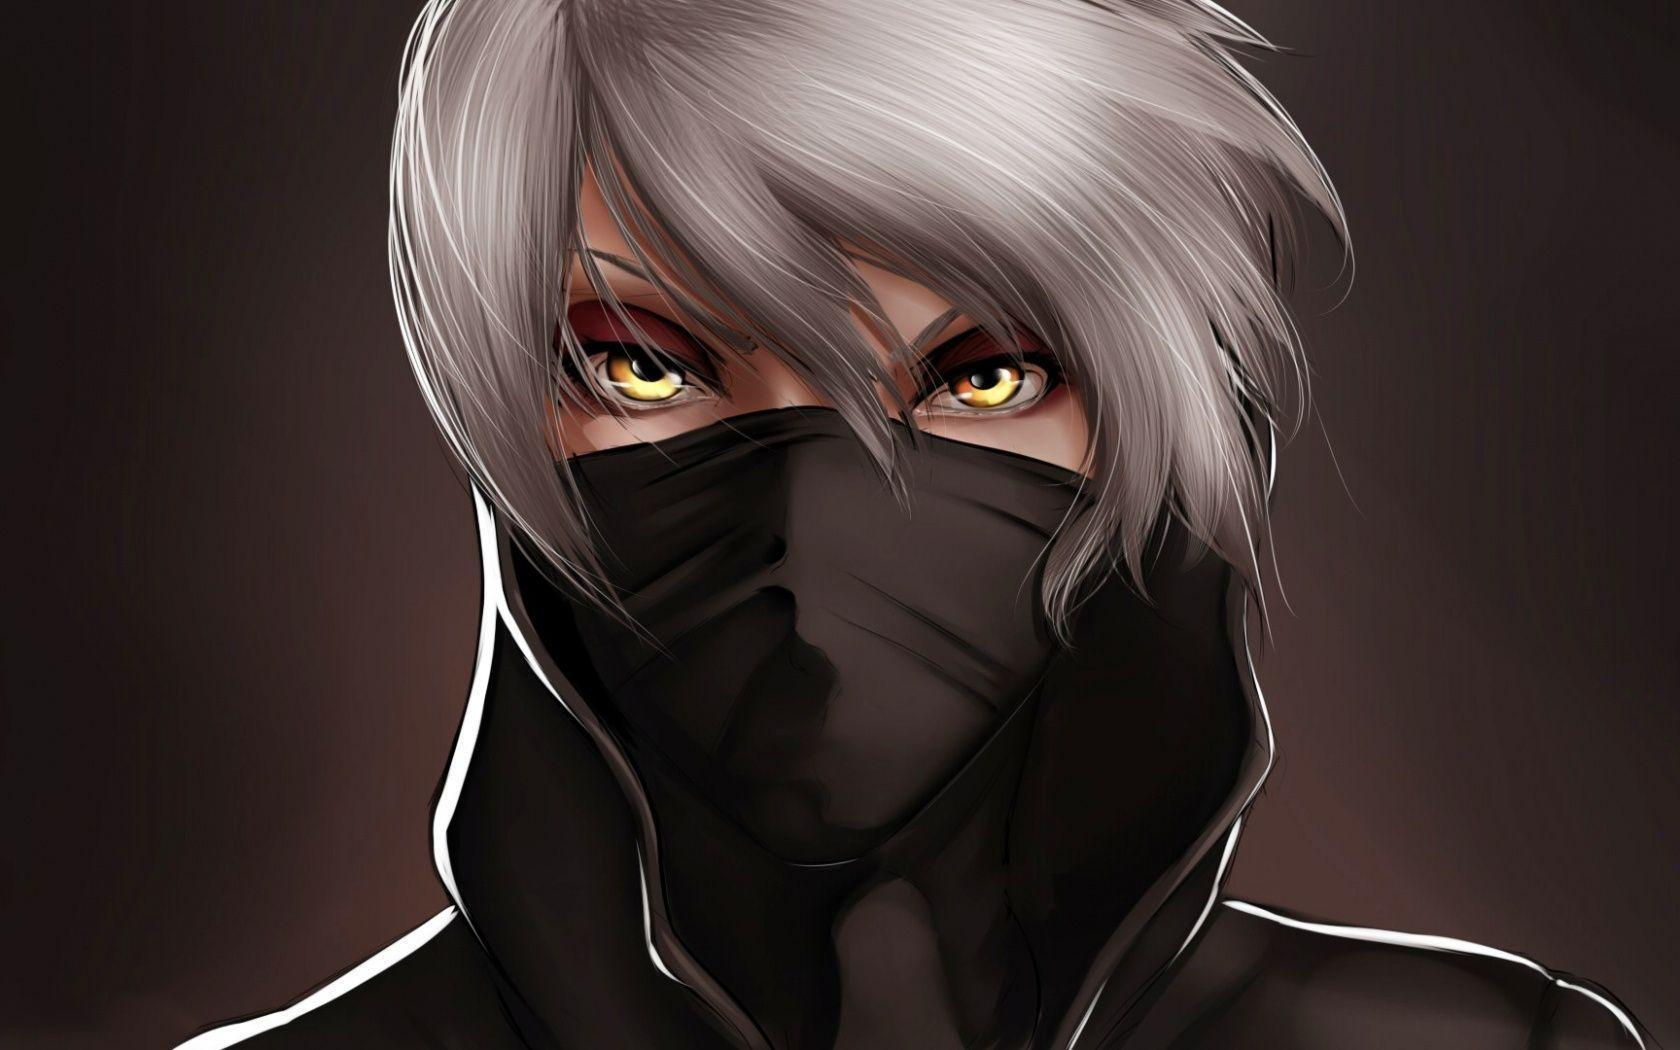 Hd Bad Boy Anime Wallpapers Wallpaper Cave